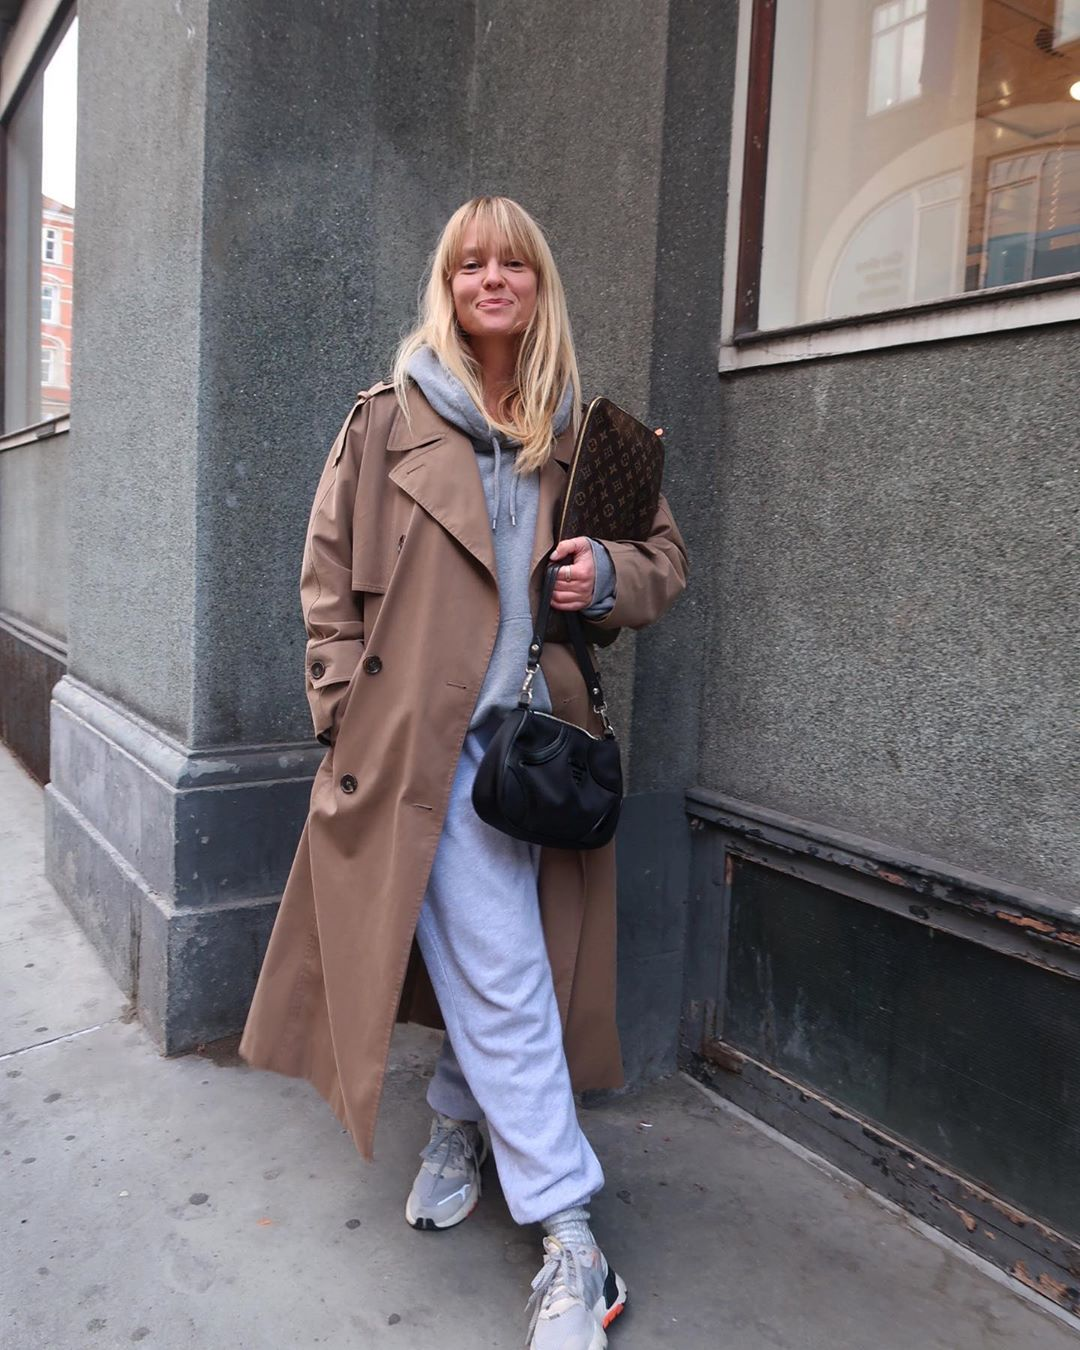 jeanette-madsen-frankie-shop-vanessa-cotton-trackpants-grey-trench-outfit-instagram